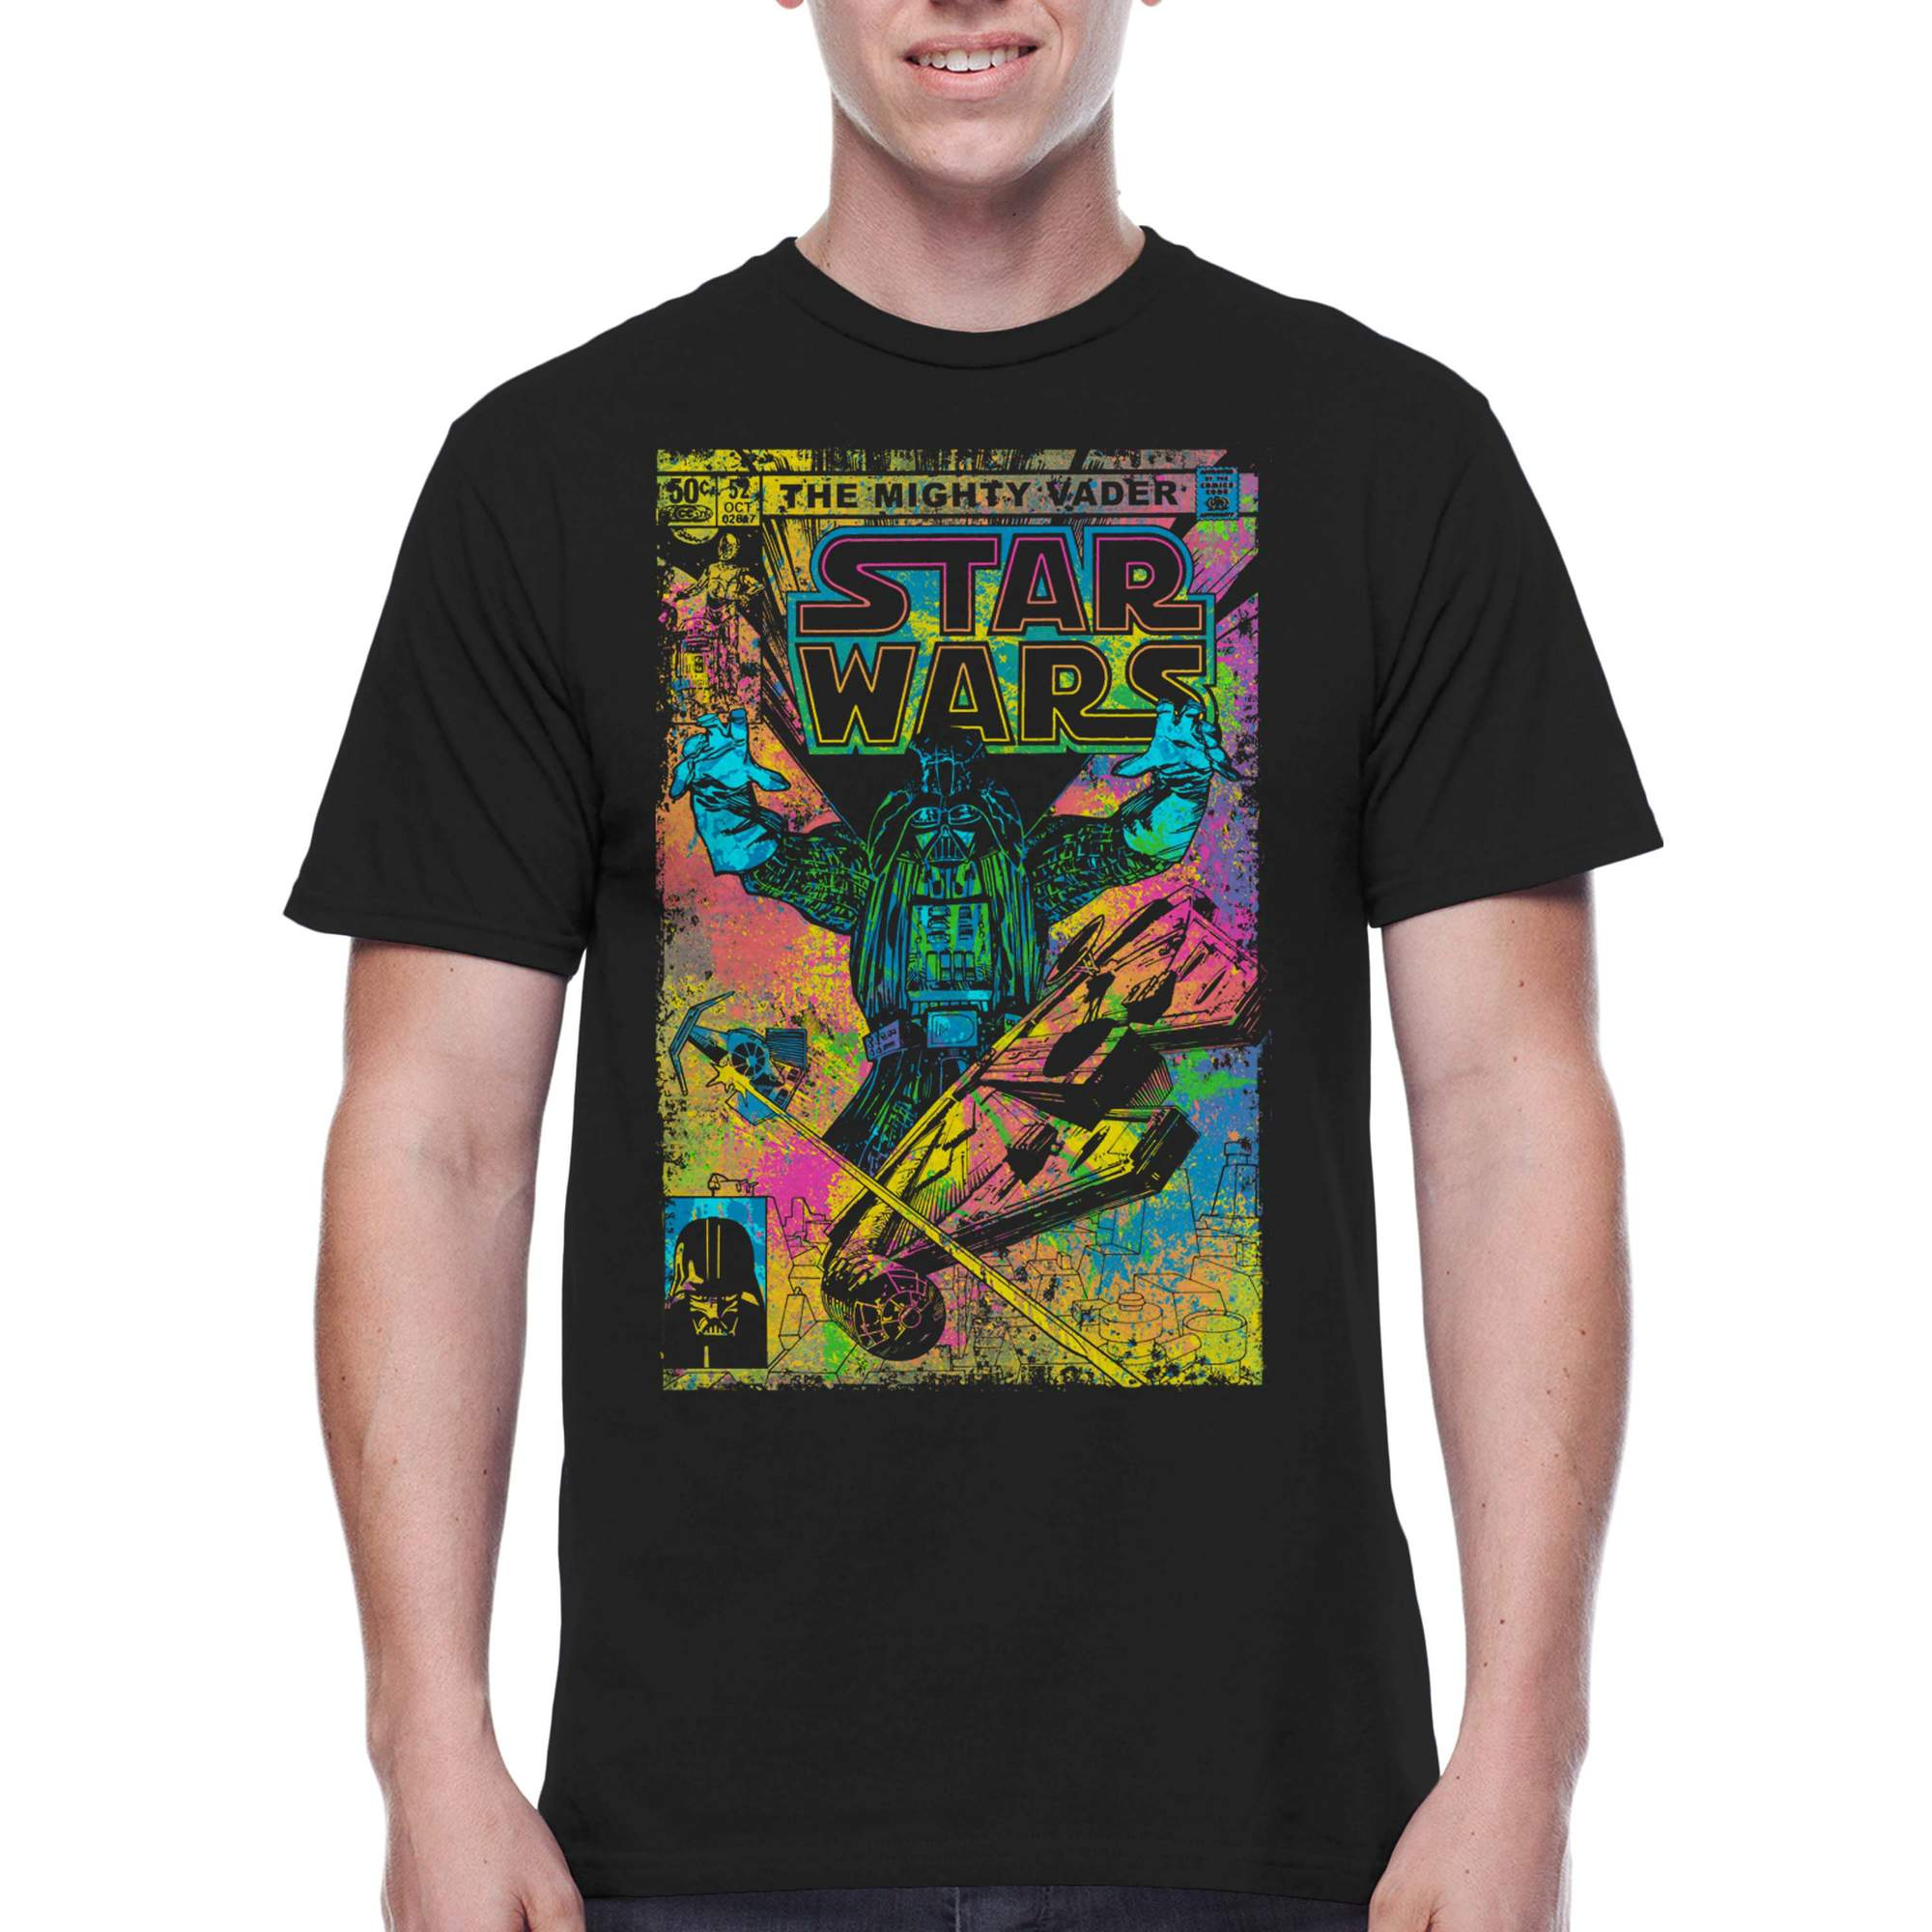 Star wars mens graphic tee, 2xl